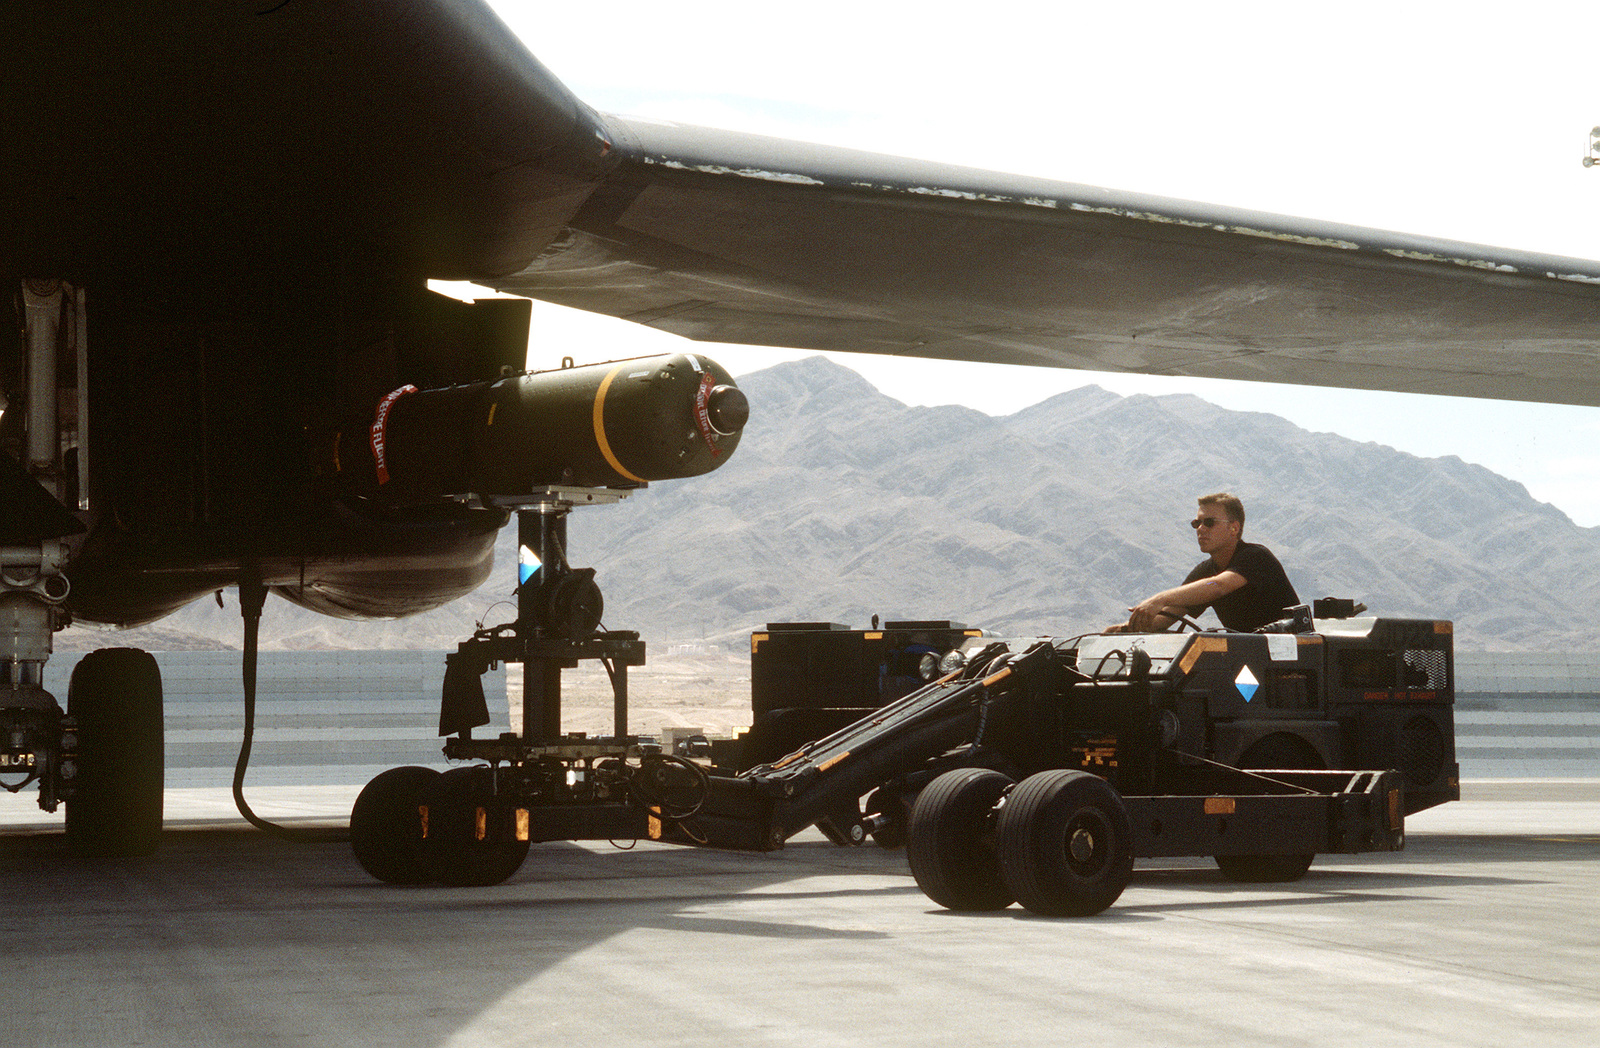 A1C Corey Futch from the 28th Bomb Squadron, 7th Bomb Wing, Dyess Air Force Base, Texas, loads a BDU bomb into a B-1B bomber using an MJ-1 weapons loader during a RED FLAG exercise. Exact Date Shot Unknown